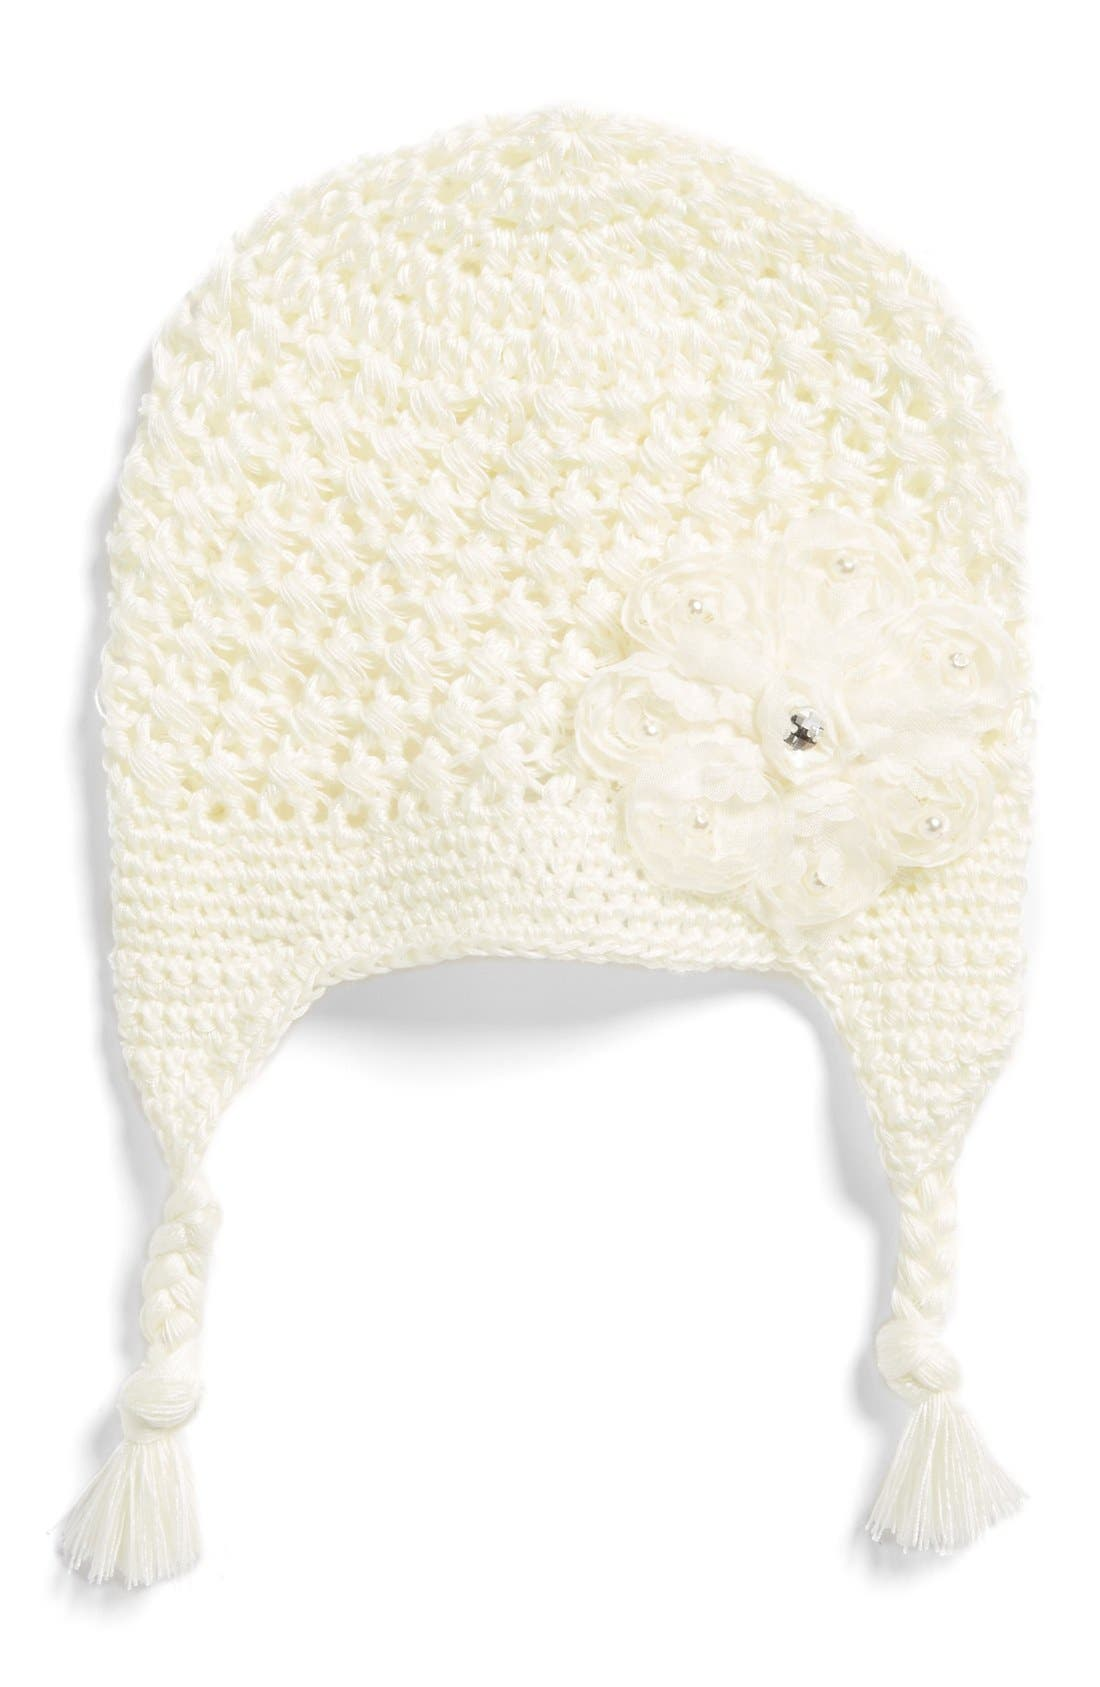 PLH Bows & Laces Crochet Hat,                         Main,                         color, Ivory